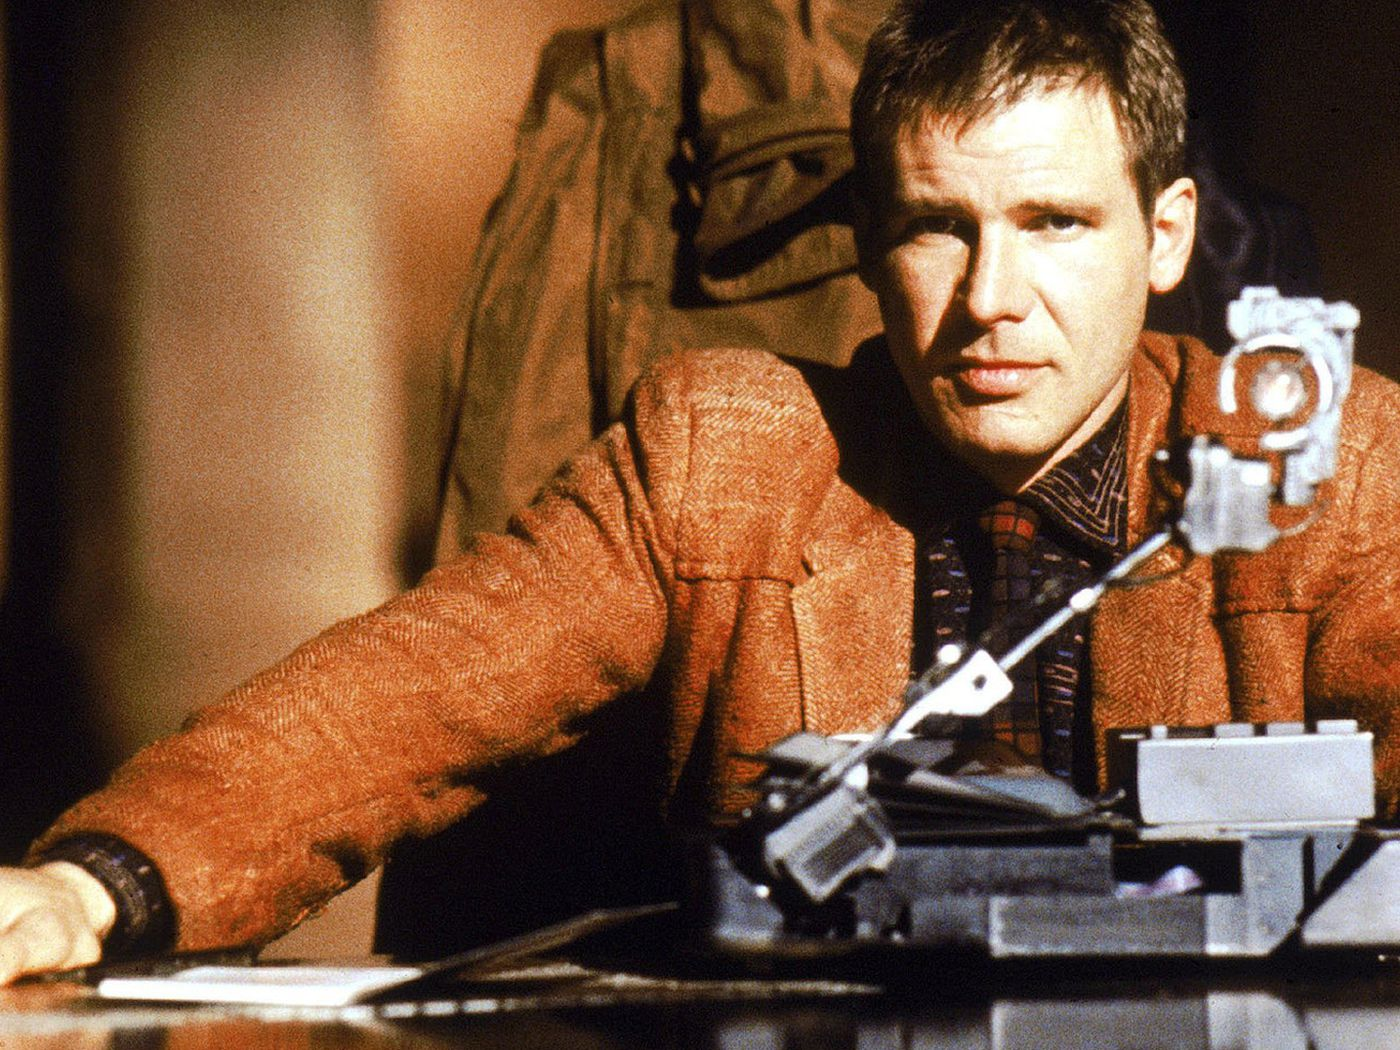 Which version of Blade Runner should I watch before seeing the